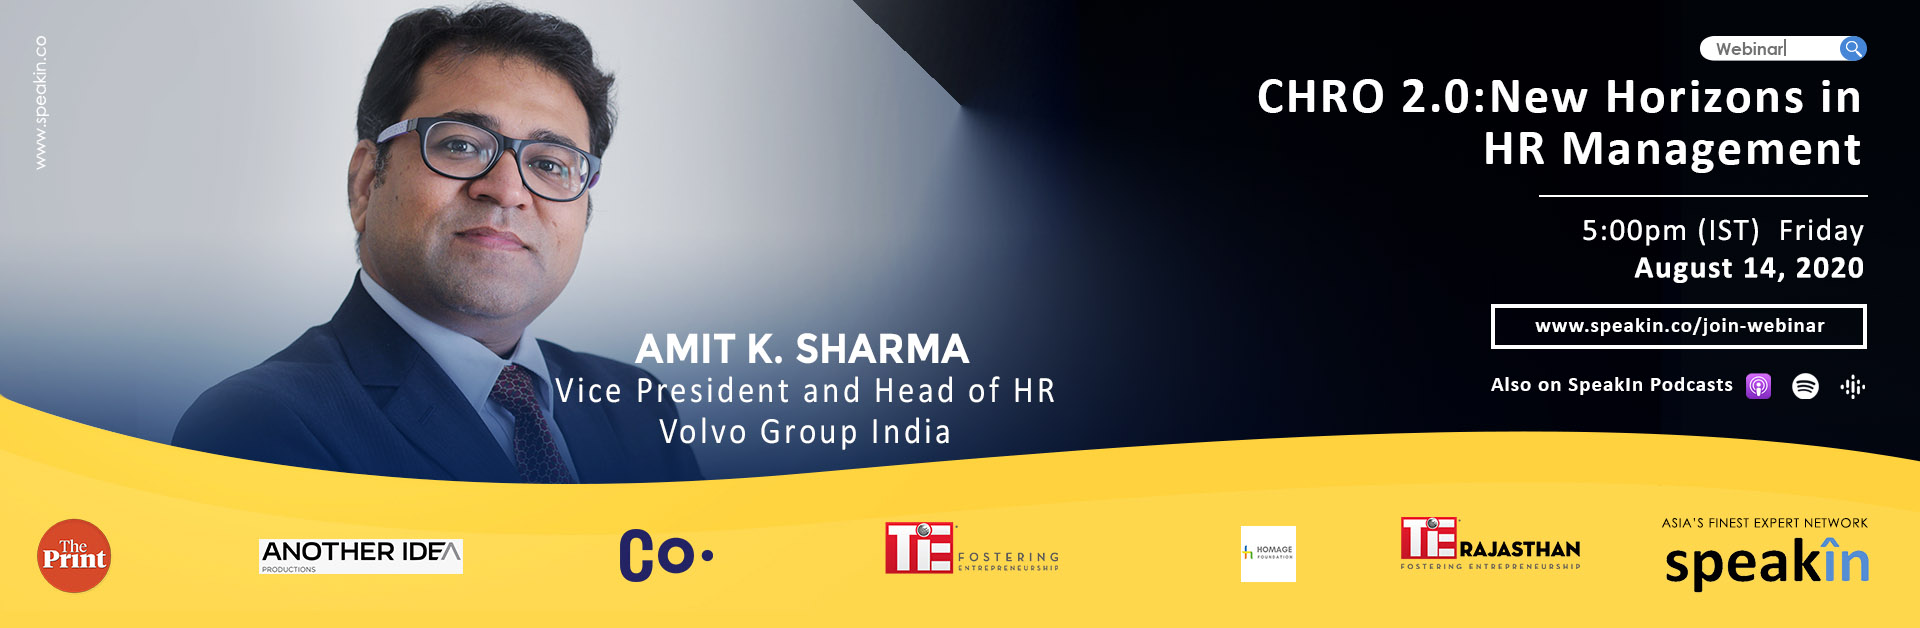 CHRO 2.0 - New Horizons in HR Management